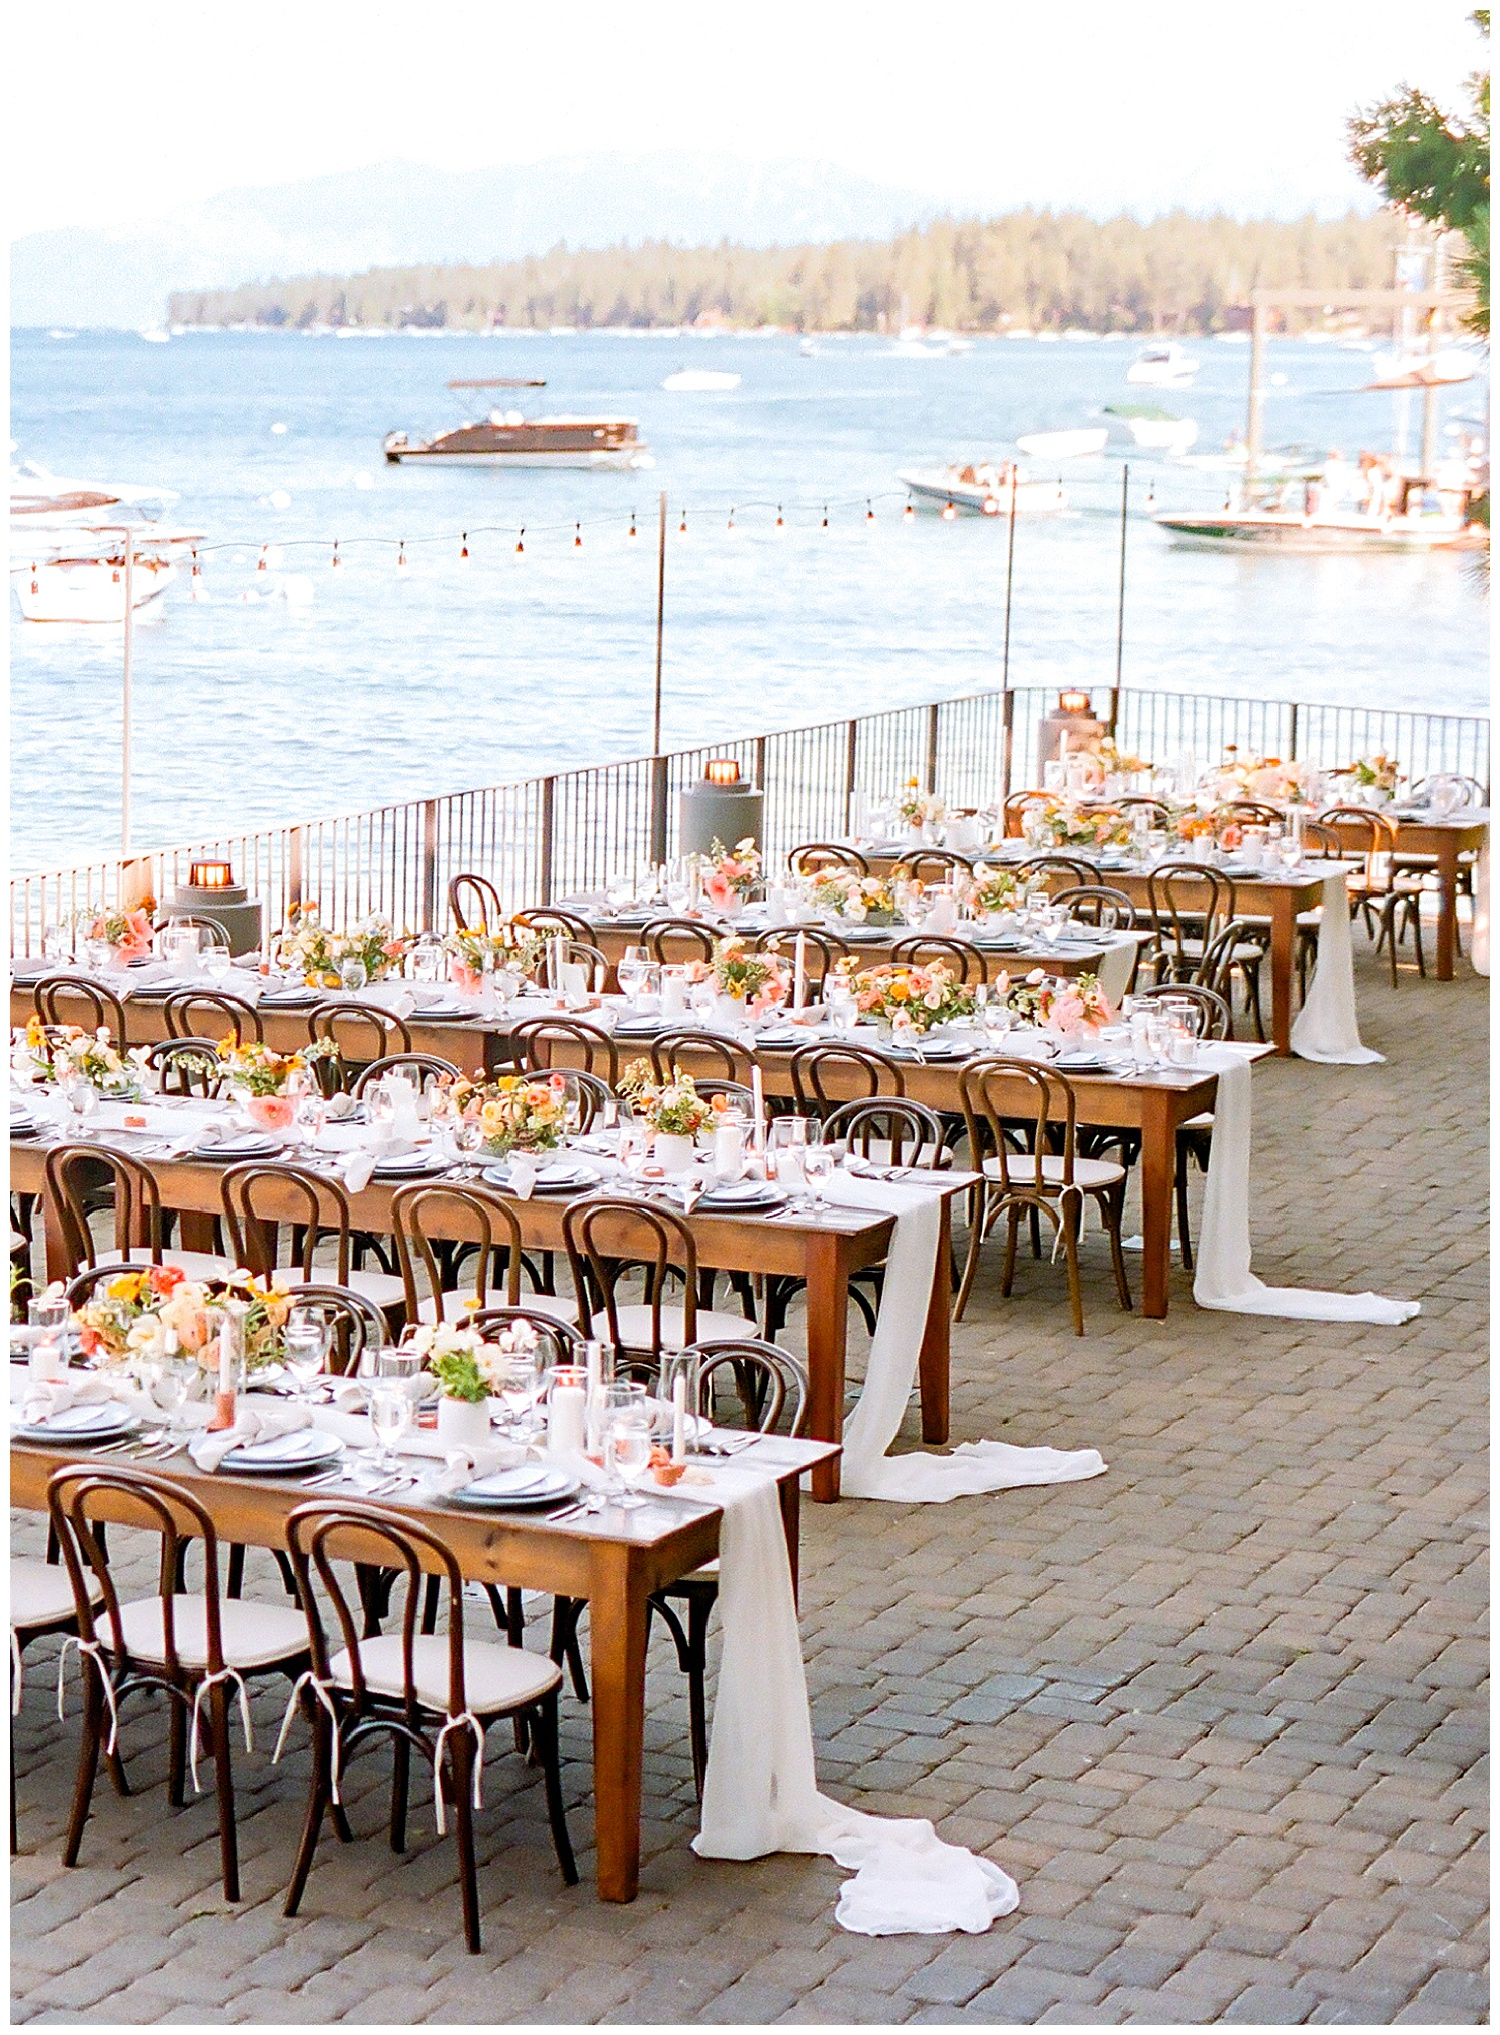 Janine_Licare_Photography_San_Francisco_Wedding_Photographer_Lake_Tahoe_West_Shore_Cafe_Colorful_Summer_0040.jpg